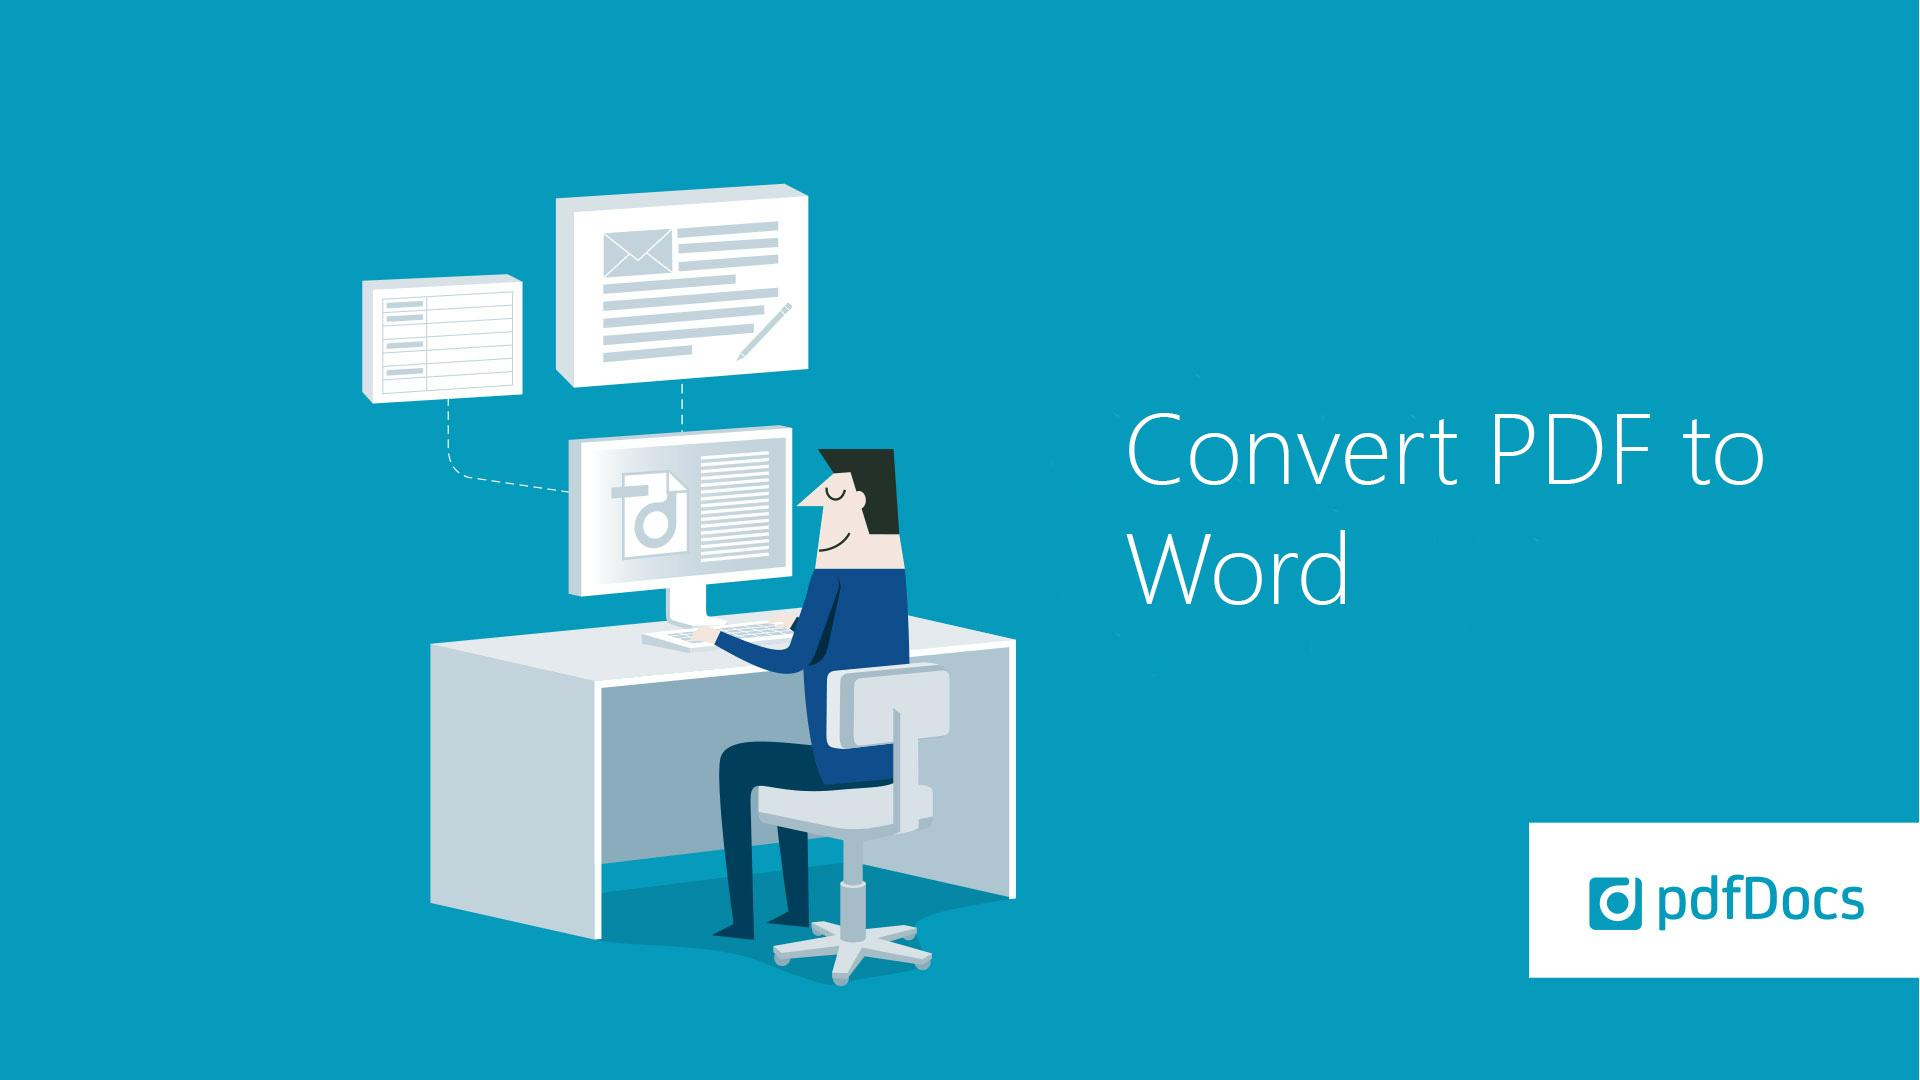 How to convert to Word from PDF in pdfDocs